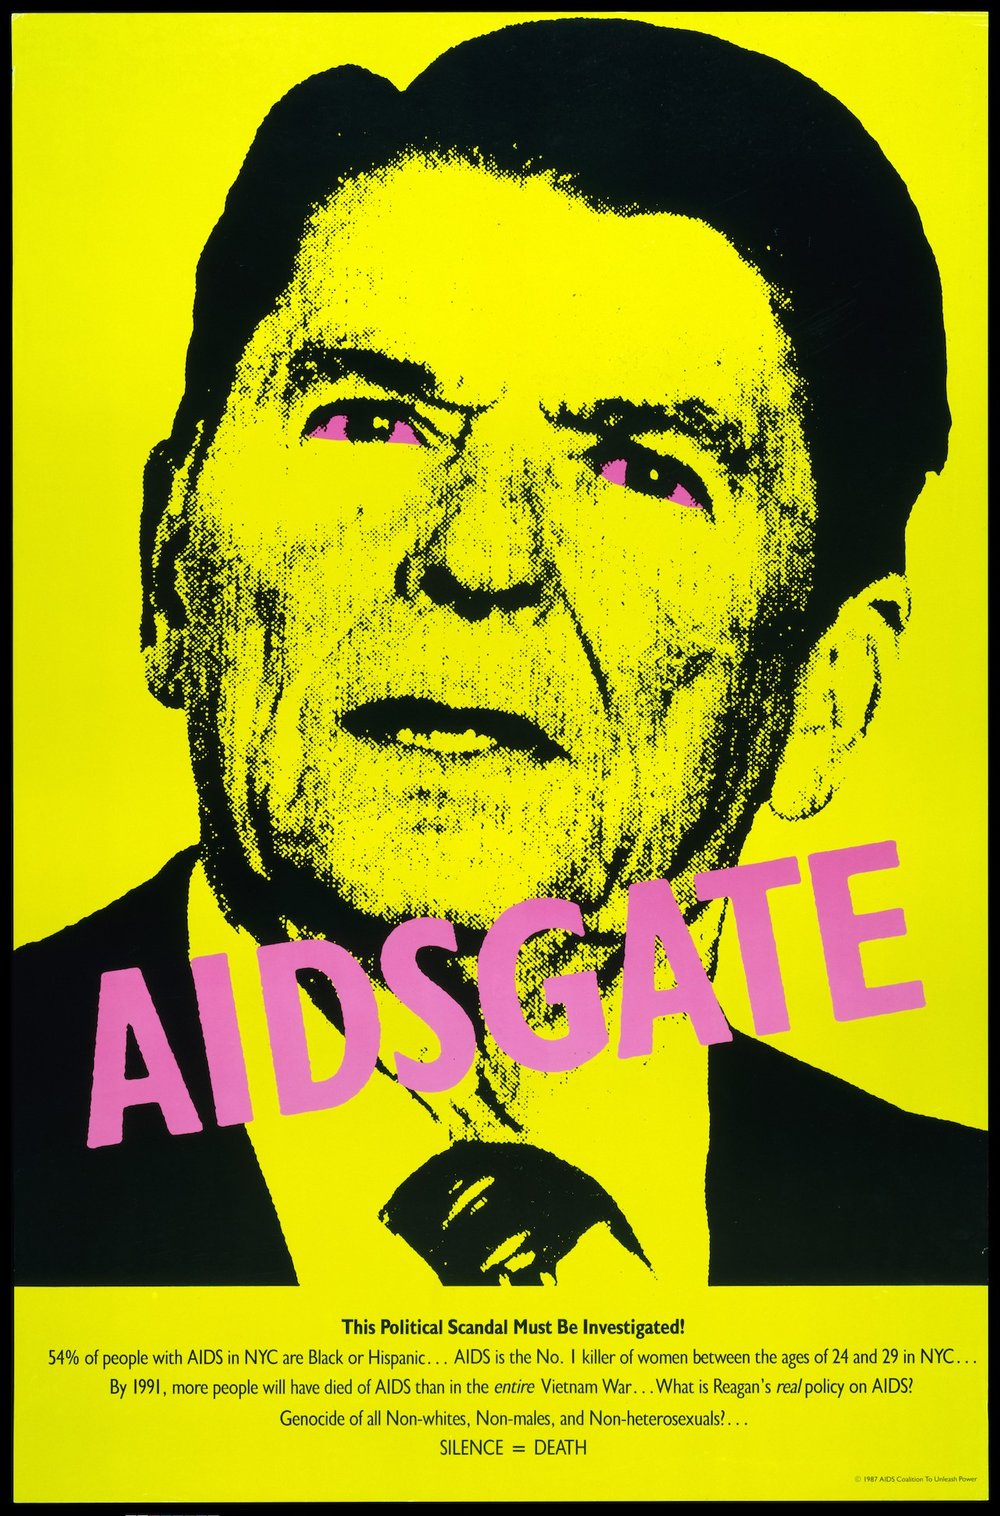 AIDSGATE, 1987, from the Silence = Death Project